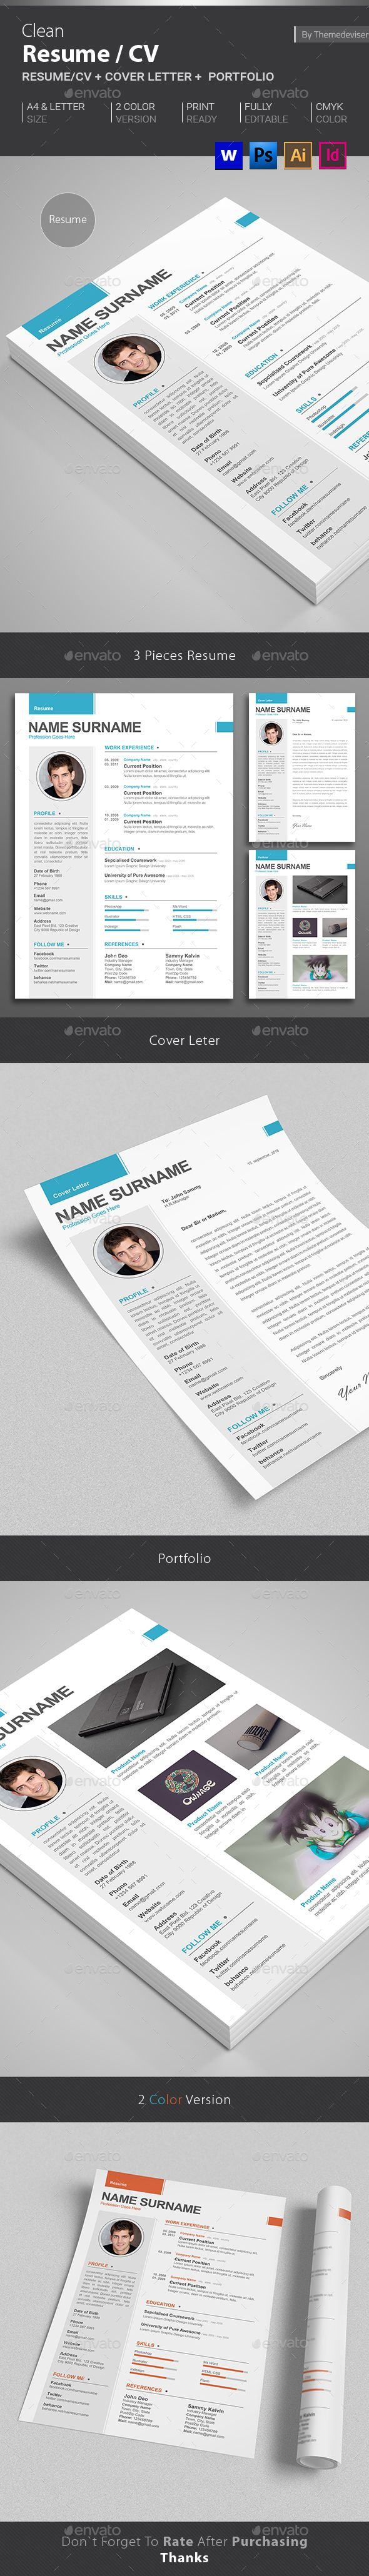 Resume Templates To Download For Word%0A Clean Resume CV Template  MS WORD   PSD   AI Illustrator    InDesign